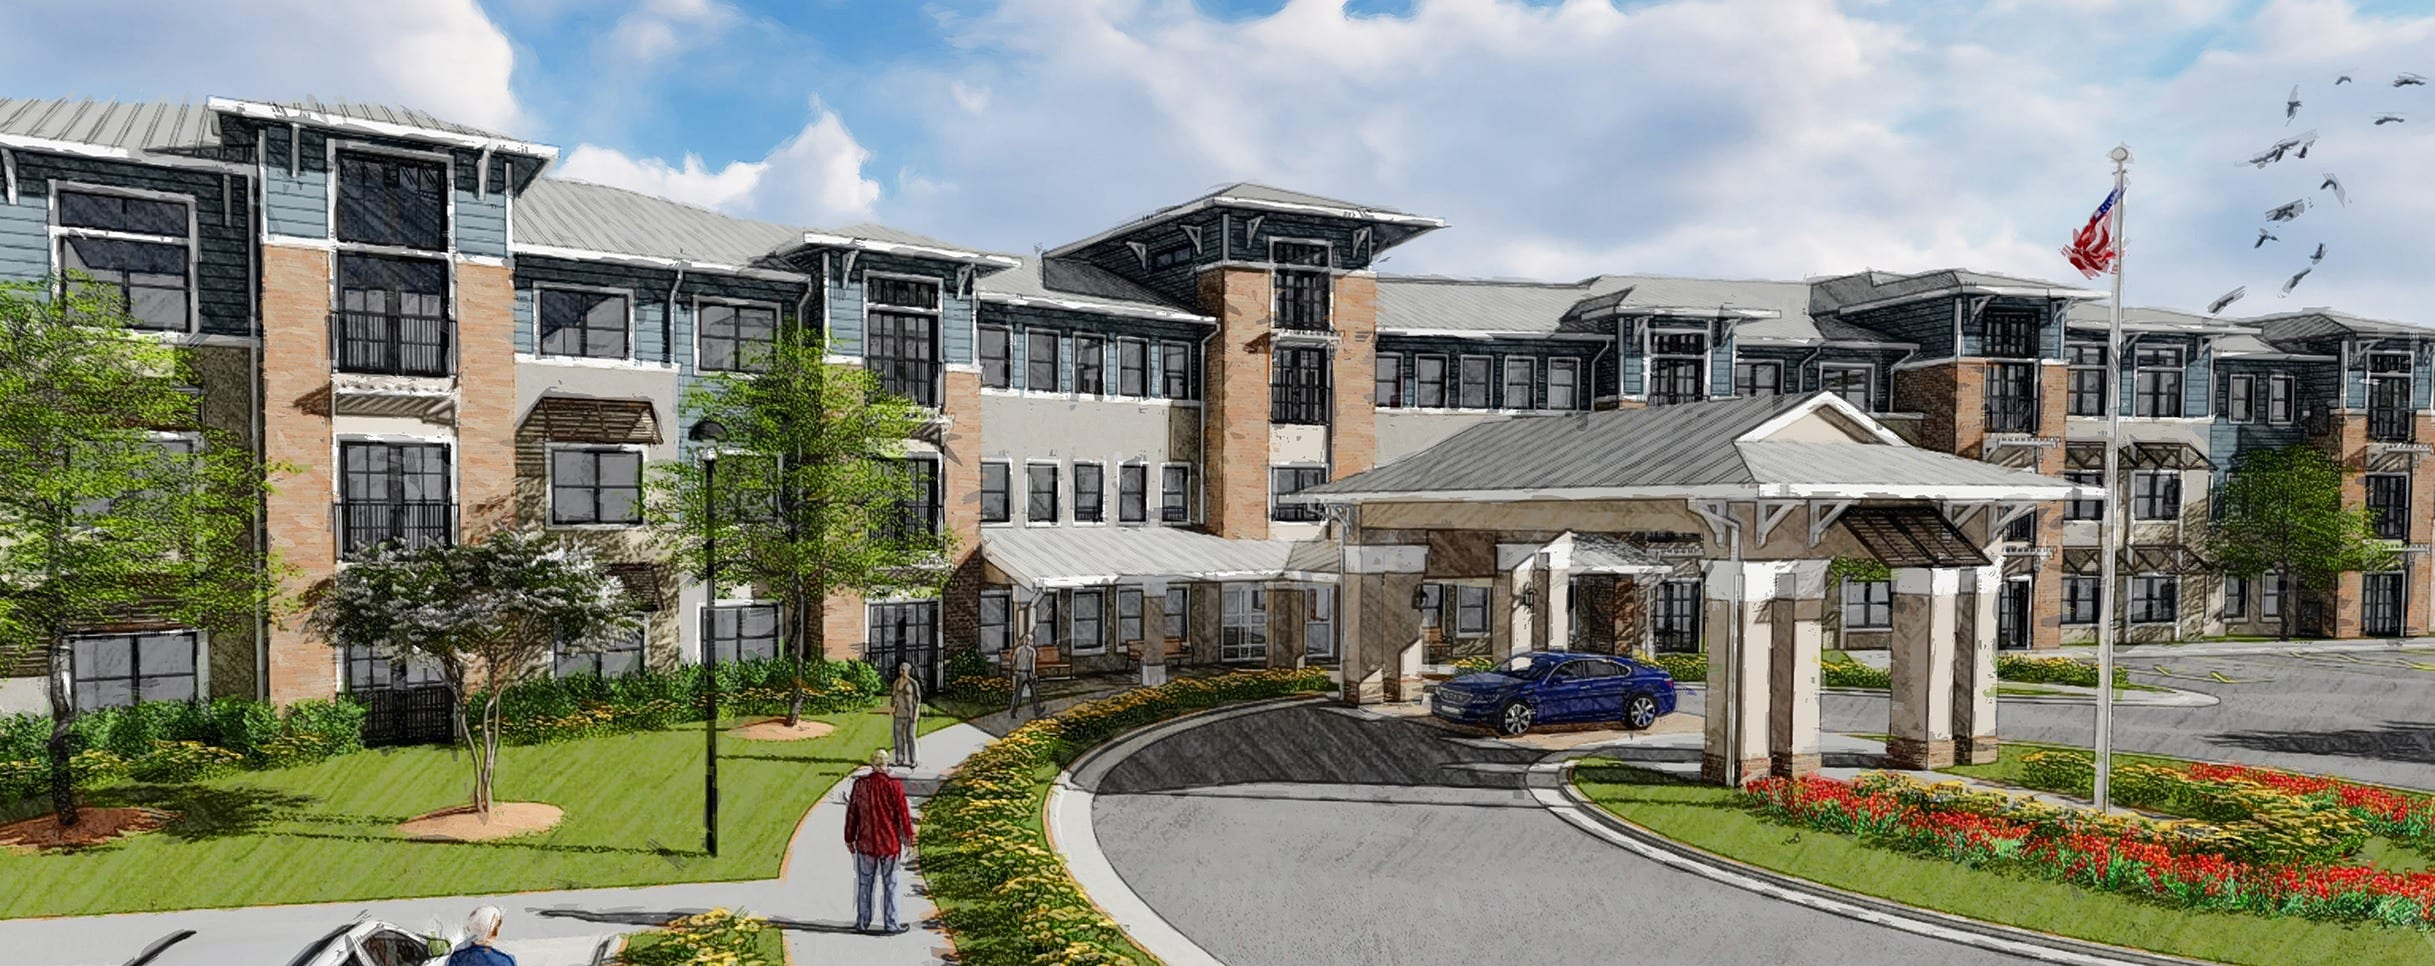 Request a Jacksonville senior living facility brochure